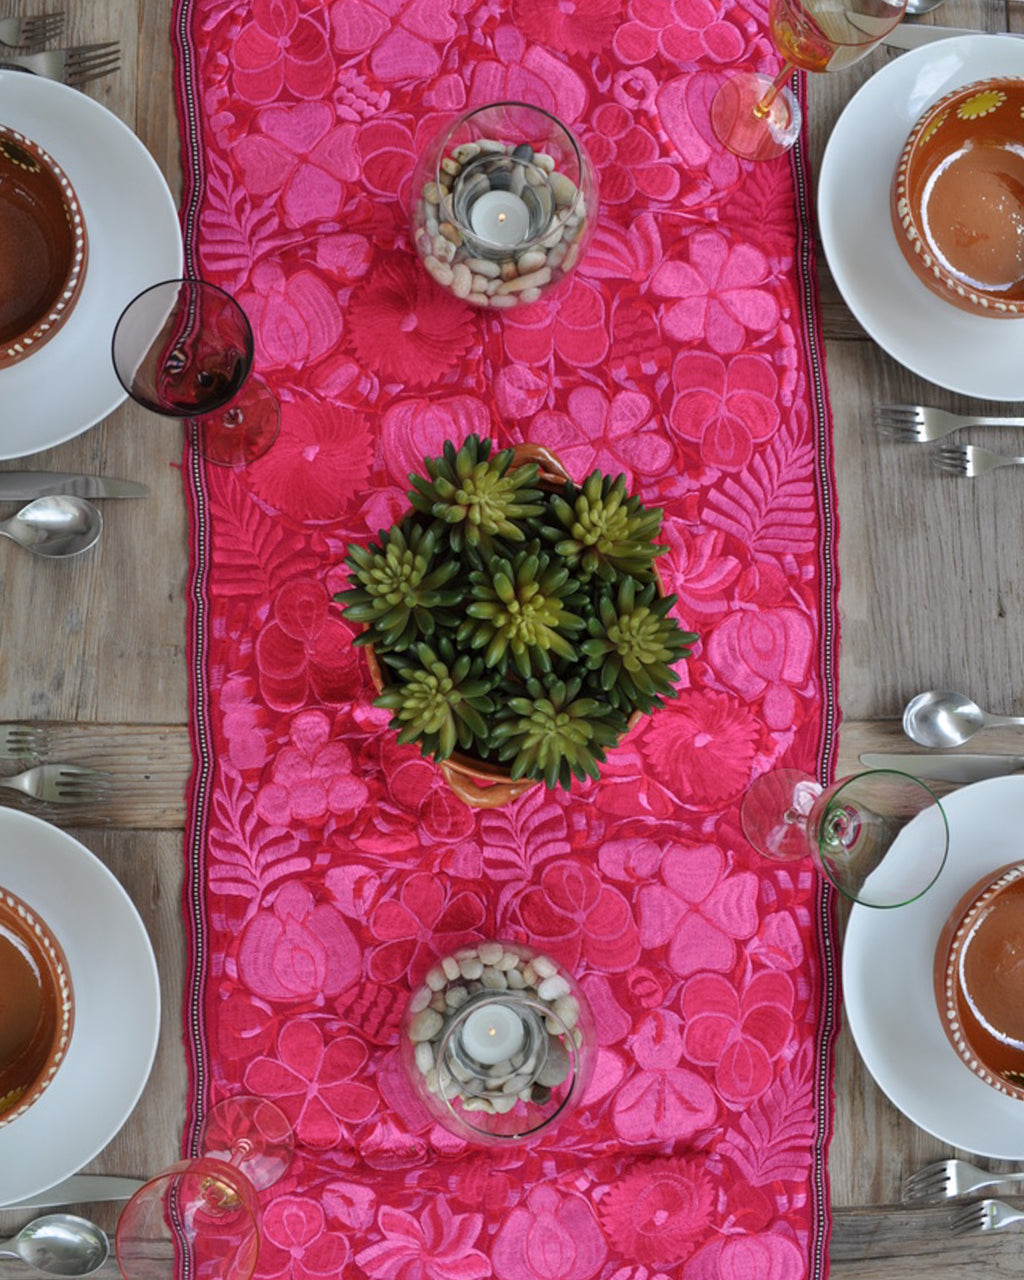 Fiusha bloom table runner